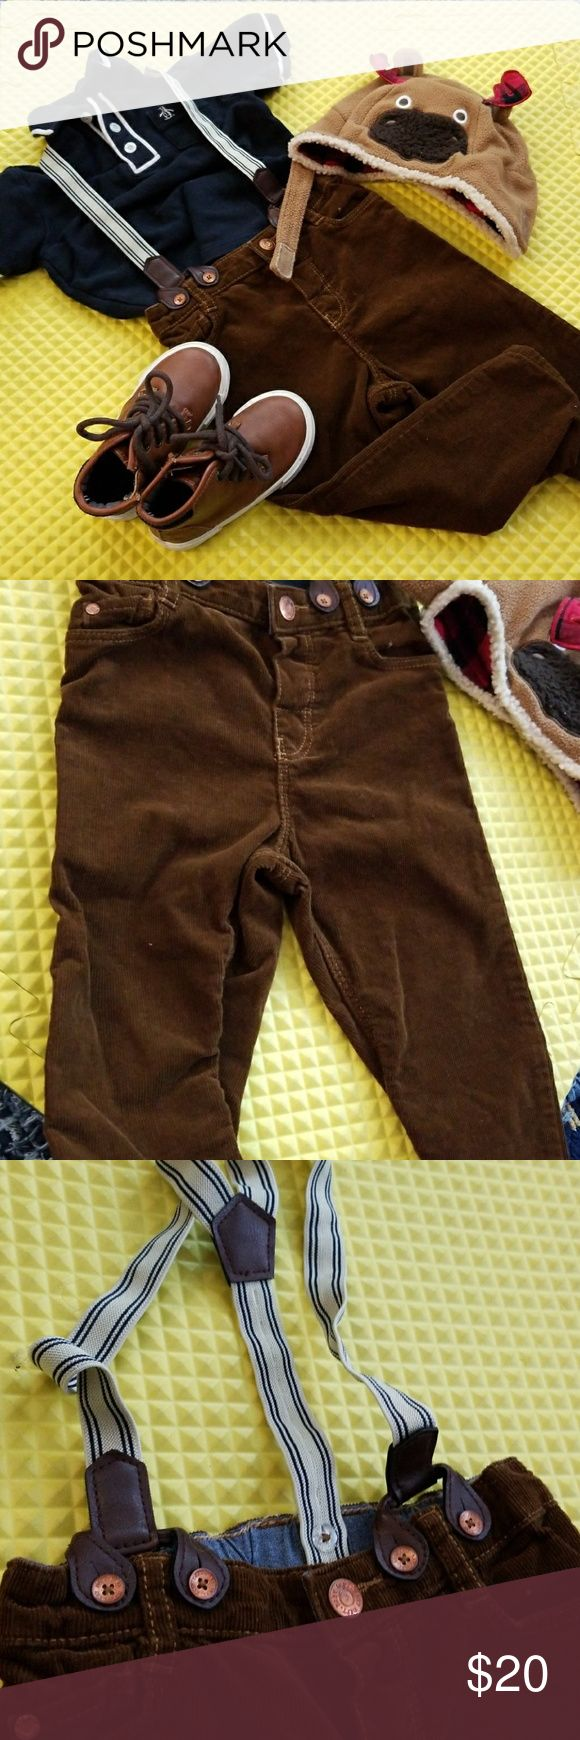 3 piece Baby boy outfit 18m Baby boy outfit 18m Original penguin brand Navy polo Brown cordoroy pants with suspenders H&M brand 12-18m size but fits up to 24m Hat is from carsons 12-24m Original Penguin Other